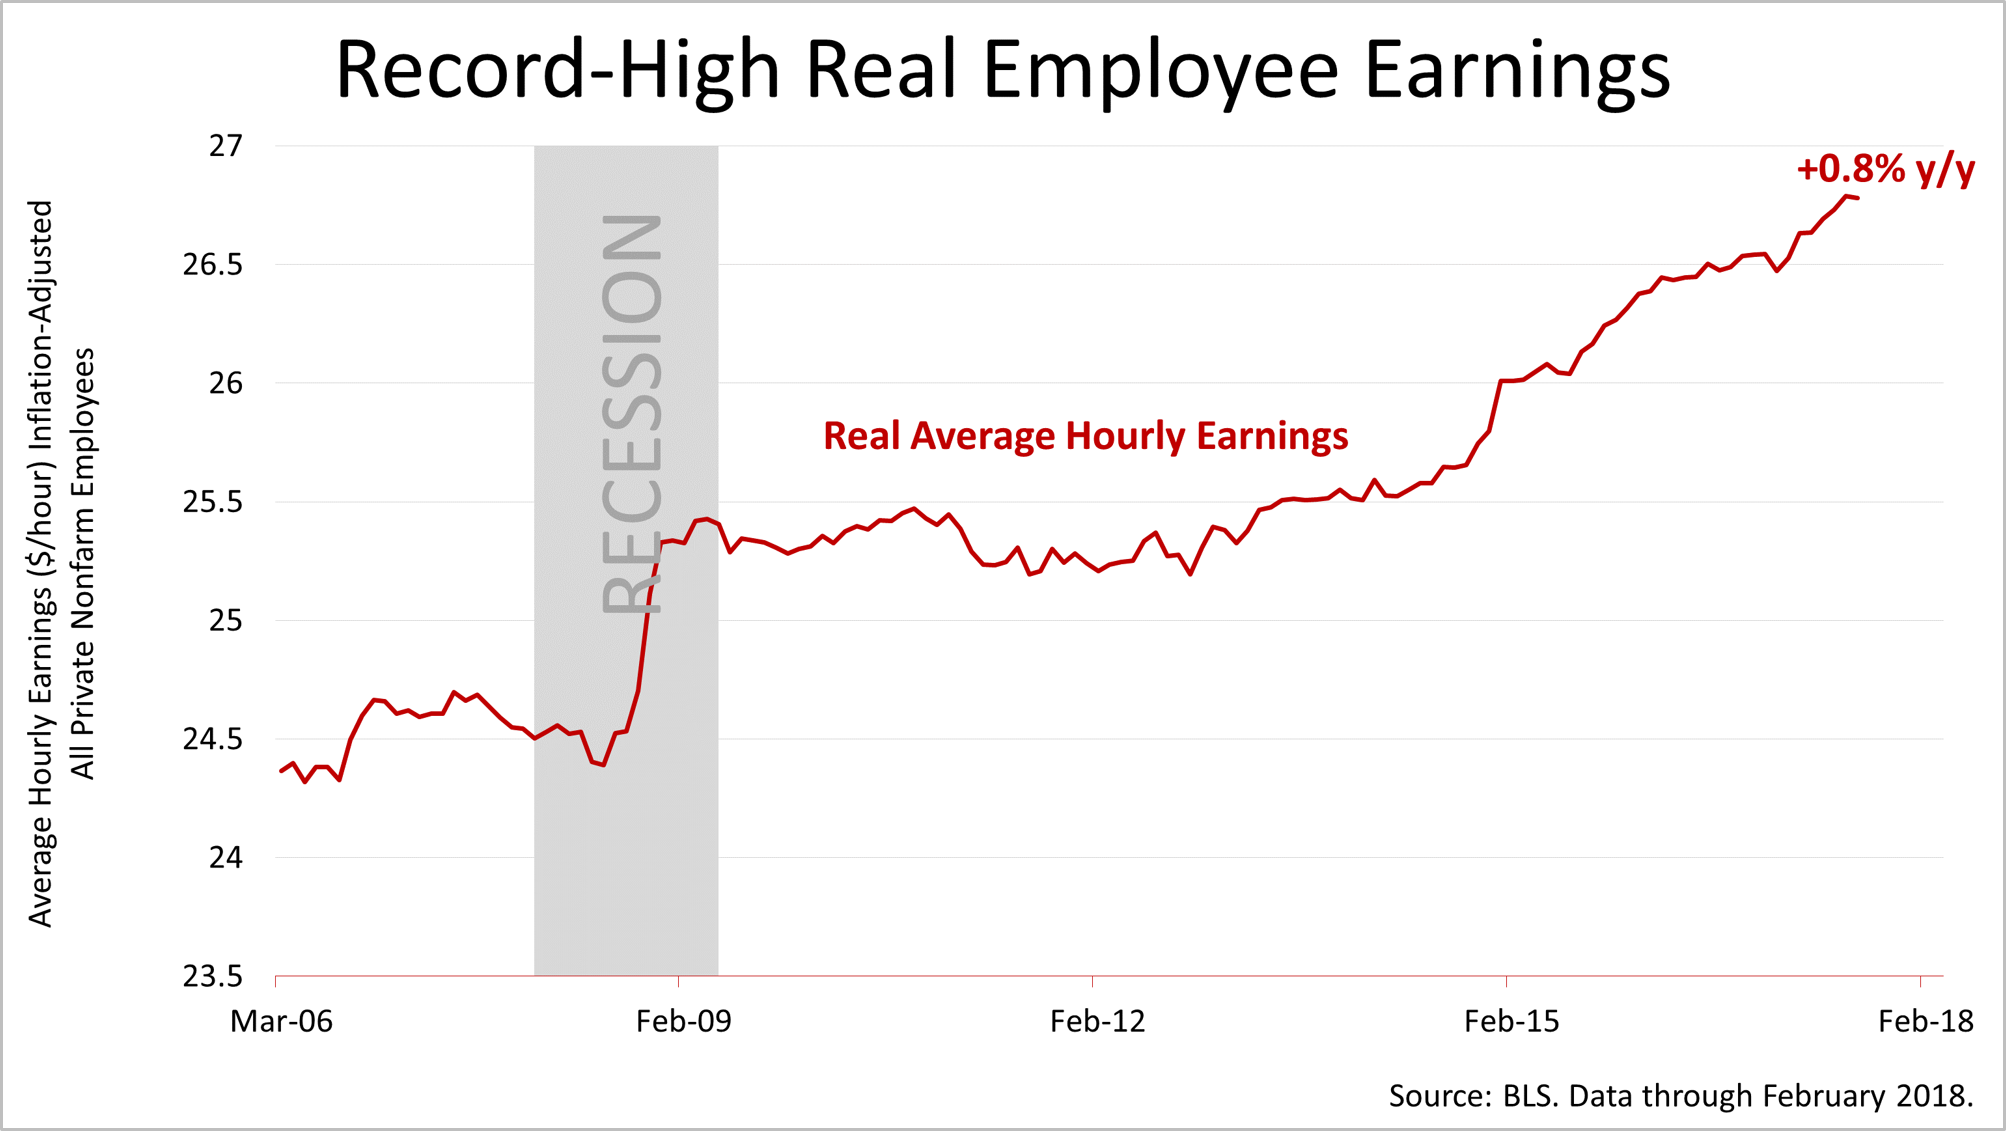 Vantage point financial services llc real average hourly earnings are at a high not just for this economic cycle but tower over the high reached in the last economic expansion nvjuhfo Gallery